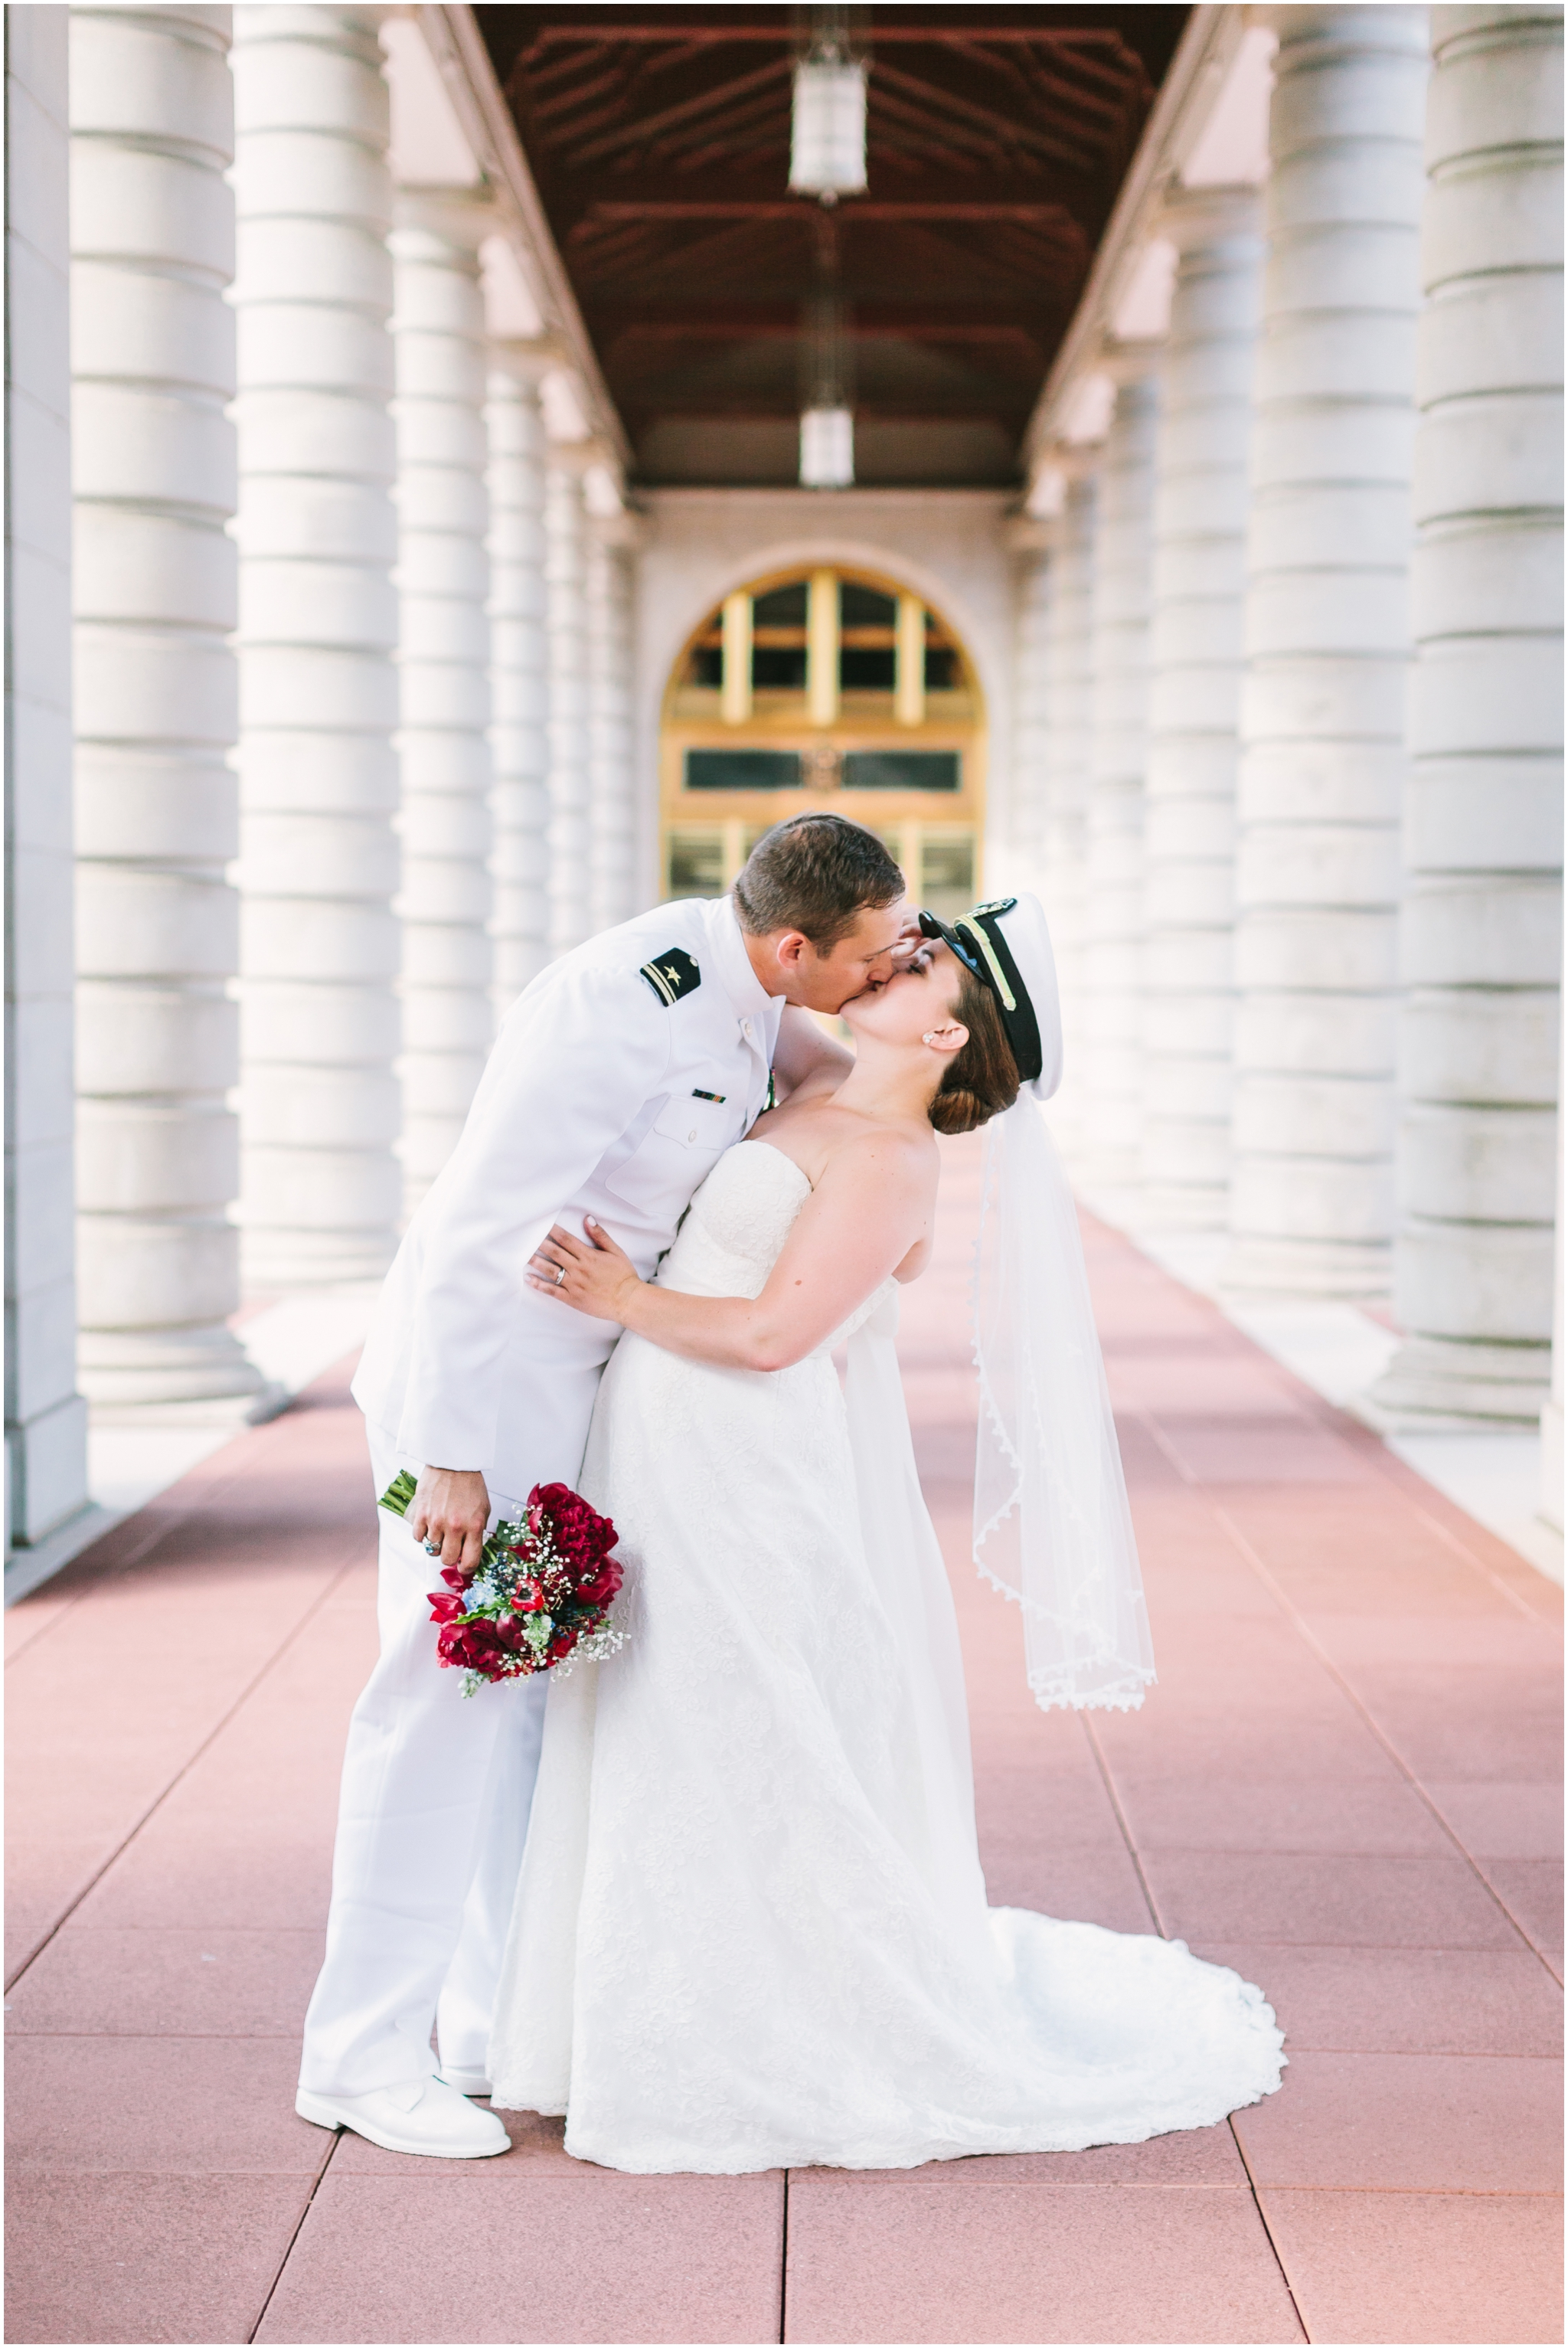 Caitlin + Zach on June 6, 2015 ♥ Megan Chase Photography at US Naval Academy (Annapolis, MD)